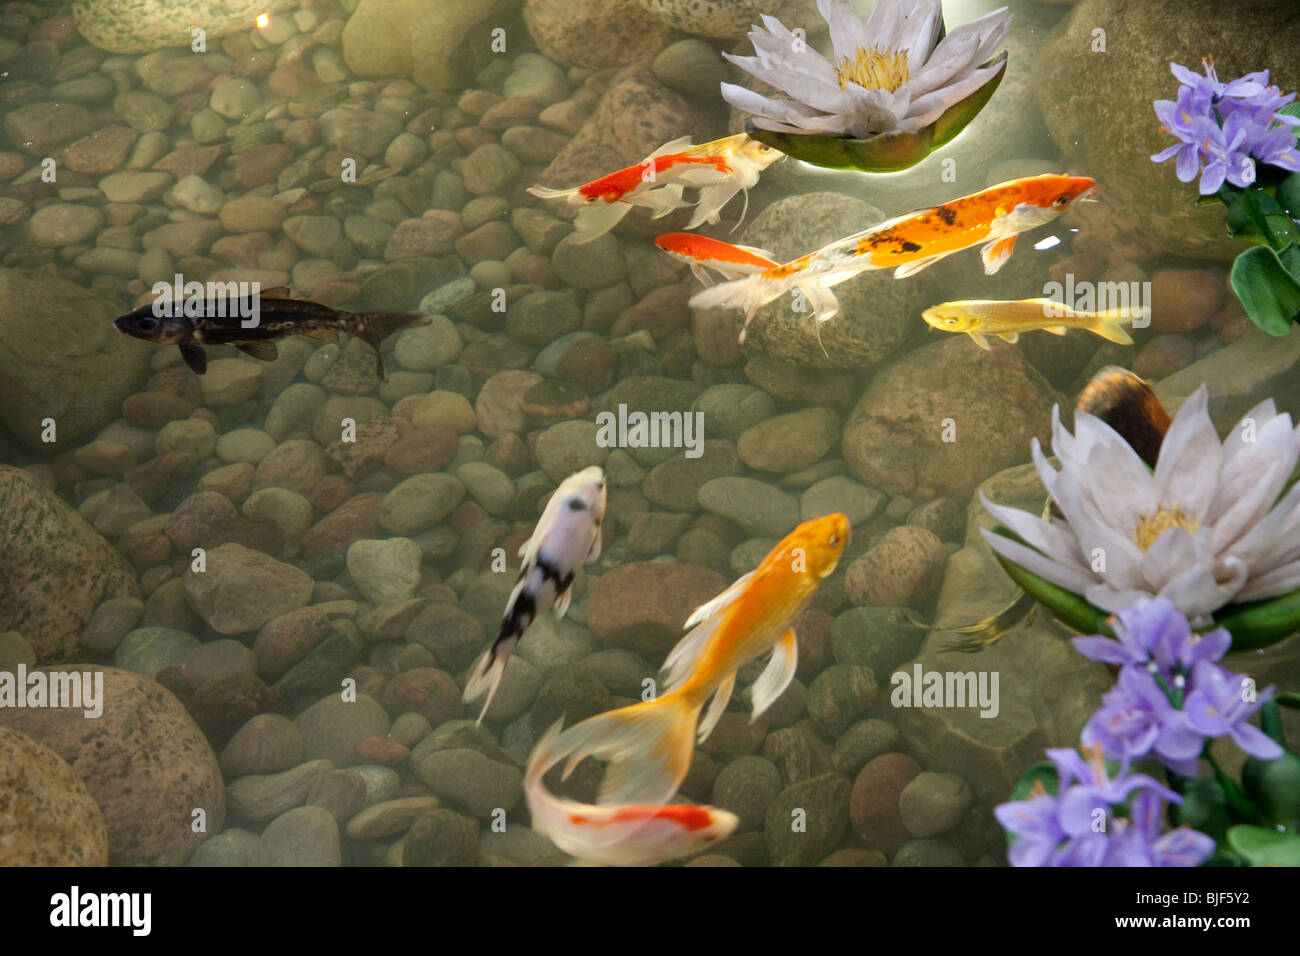 Pond fish rock stockfotos pond fish rock bilder alamy for Japanische teichfische